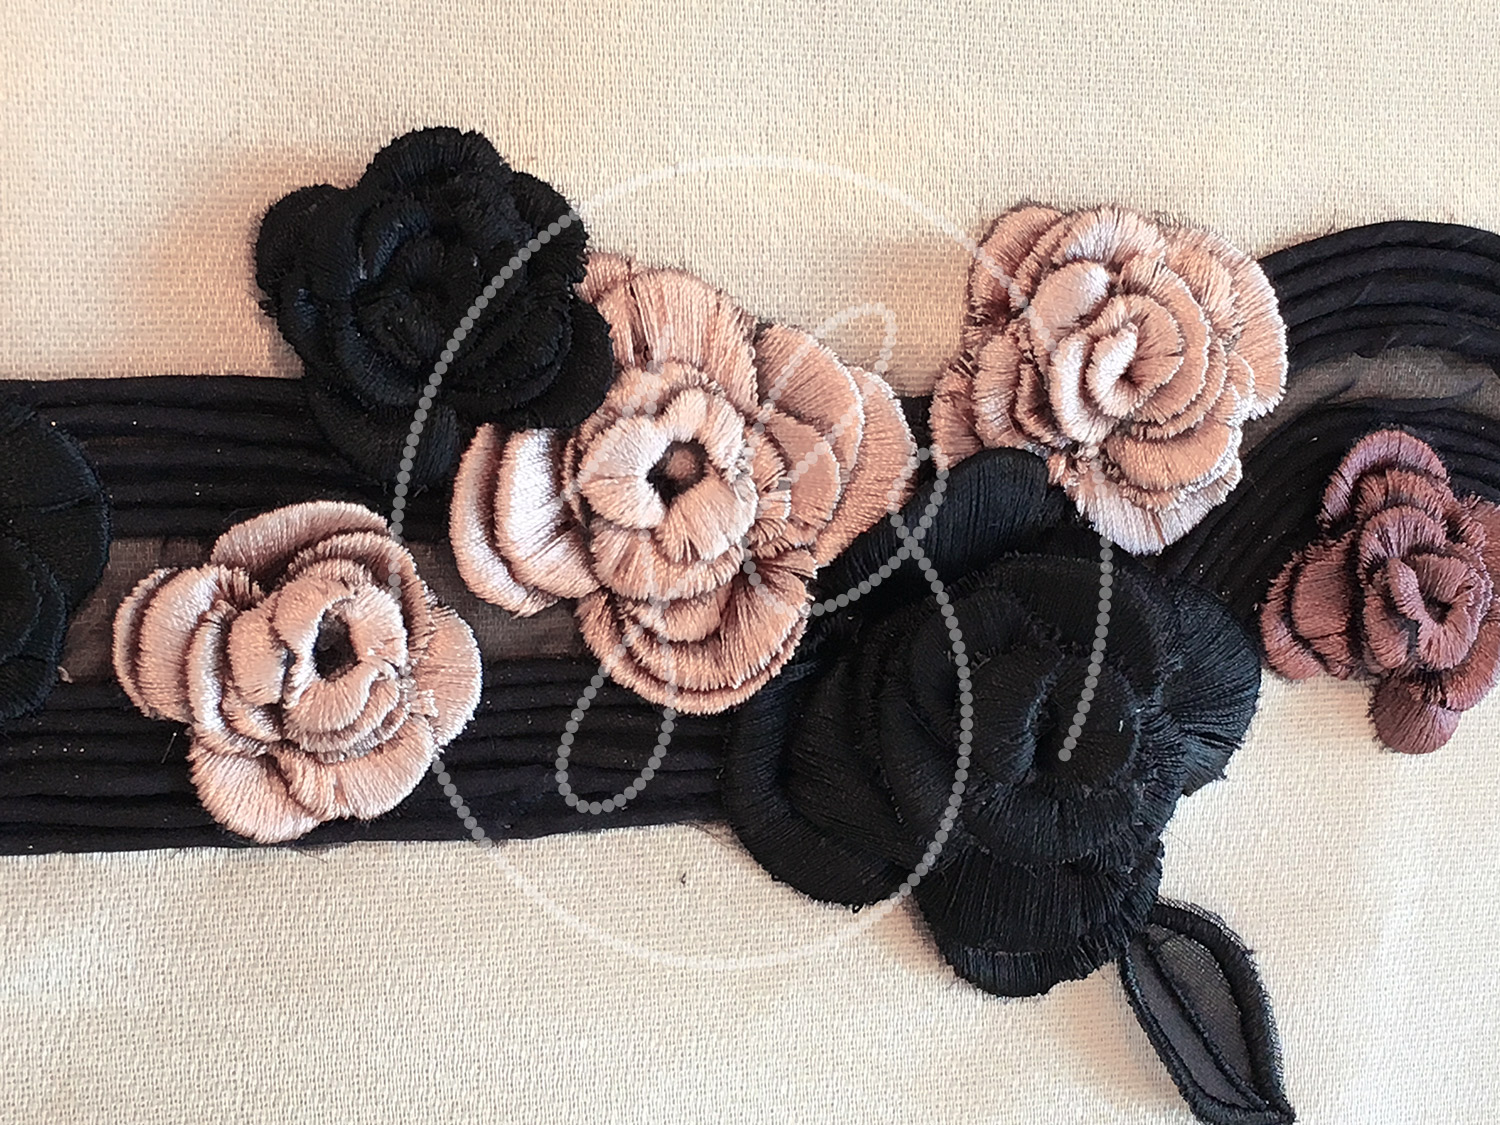 CAMELLIAS WITH CORDING  Fabric corded, manipulated and embellished with 3D camellias.